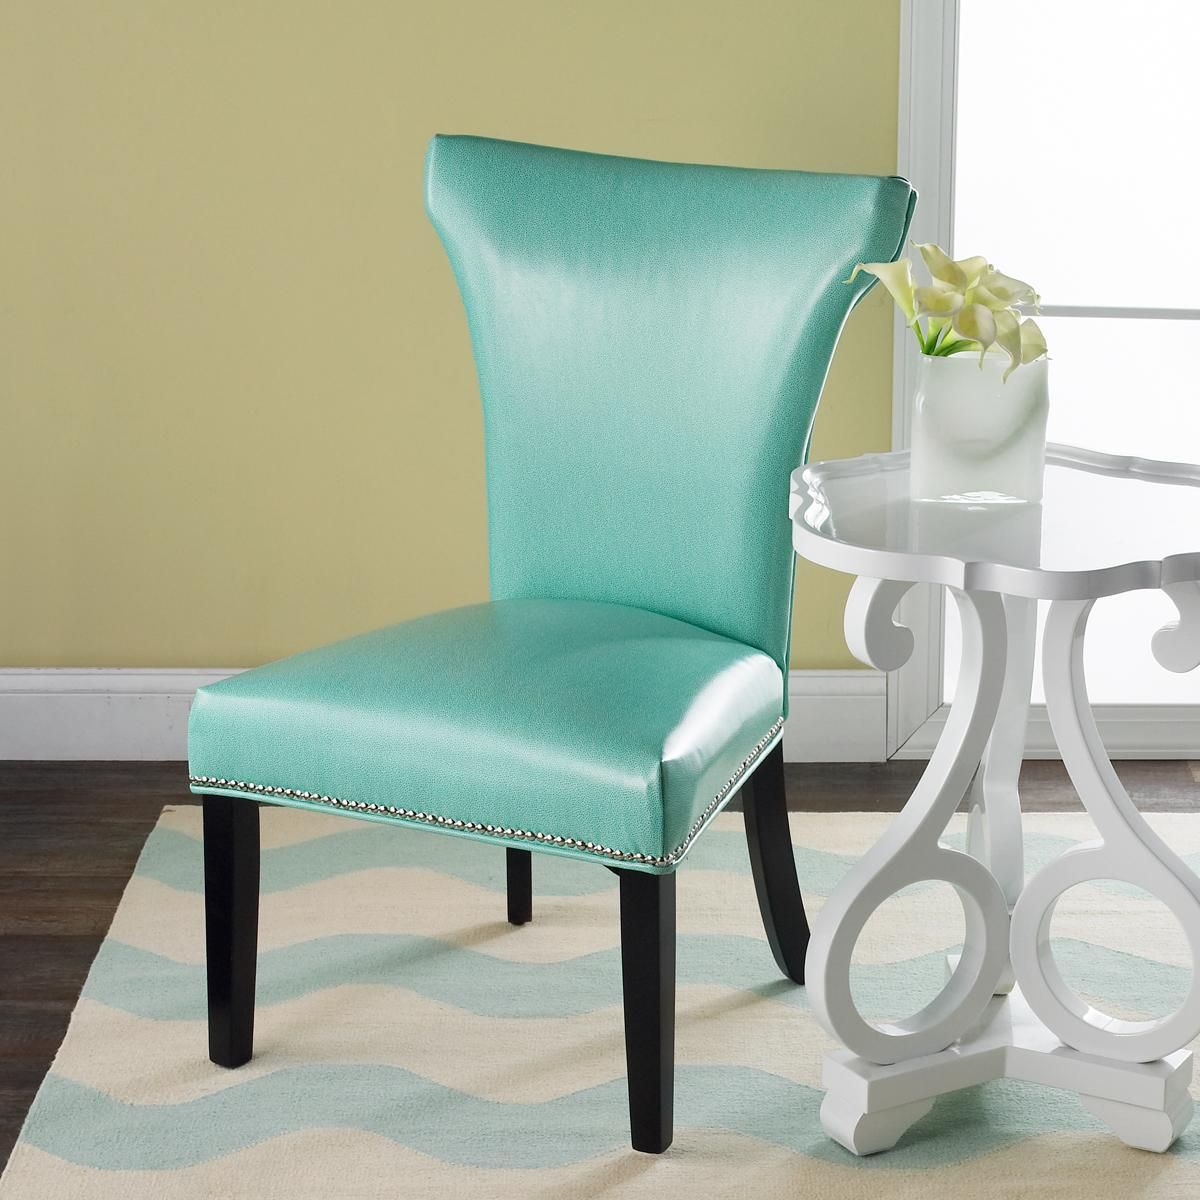 Aqua Dining Room Chair Covers Bedroom Walmart Turquoise Parsons The Shapely Flared Back Design And